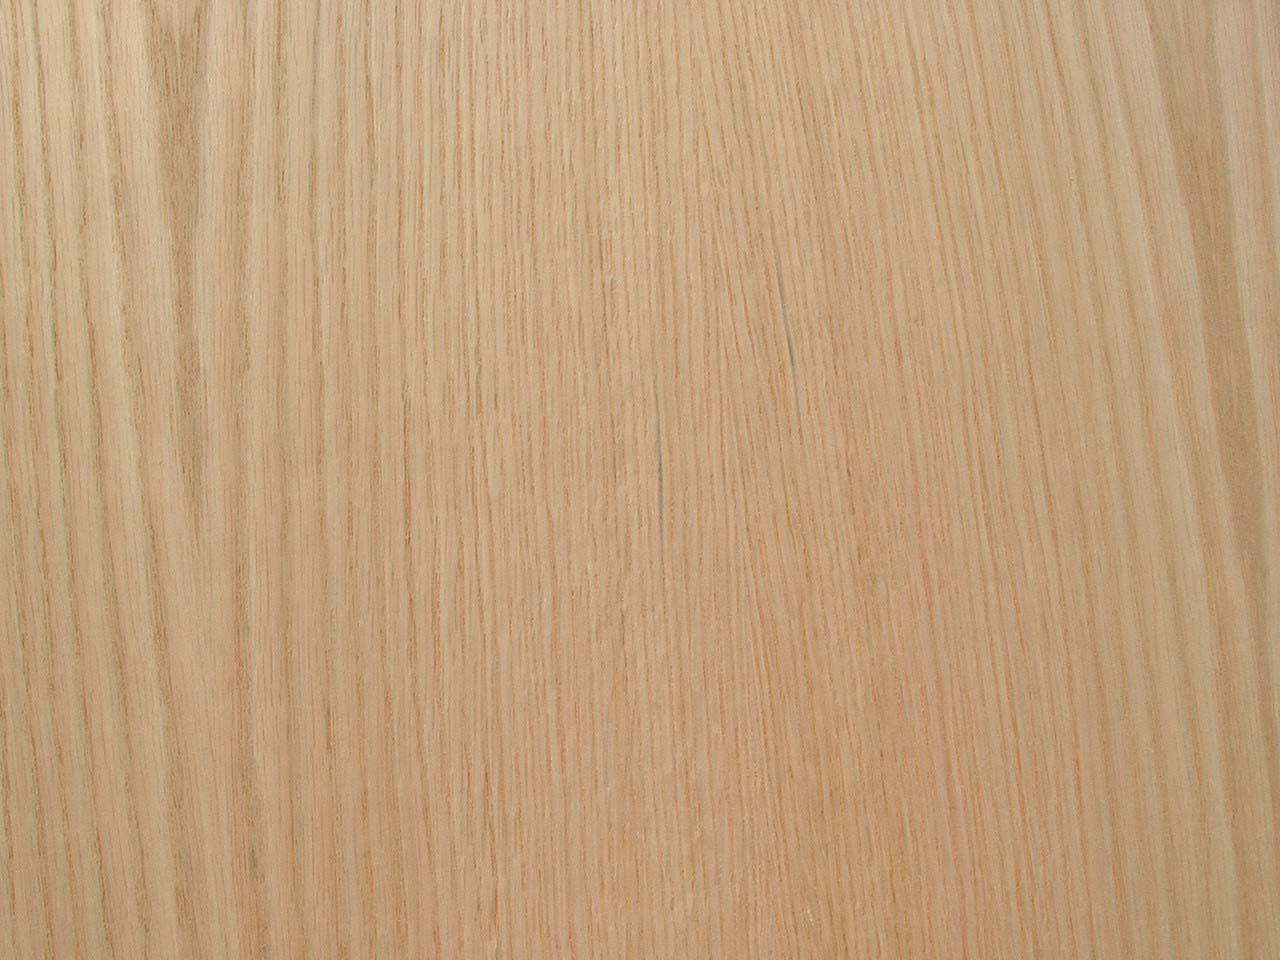 Help With Wood Material Need Name In English